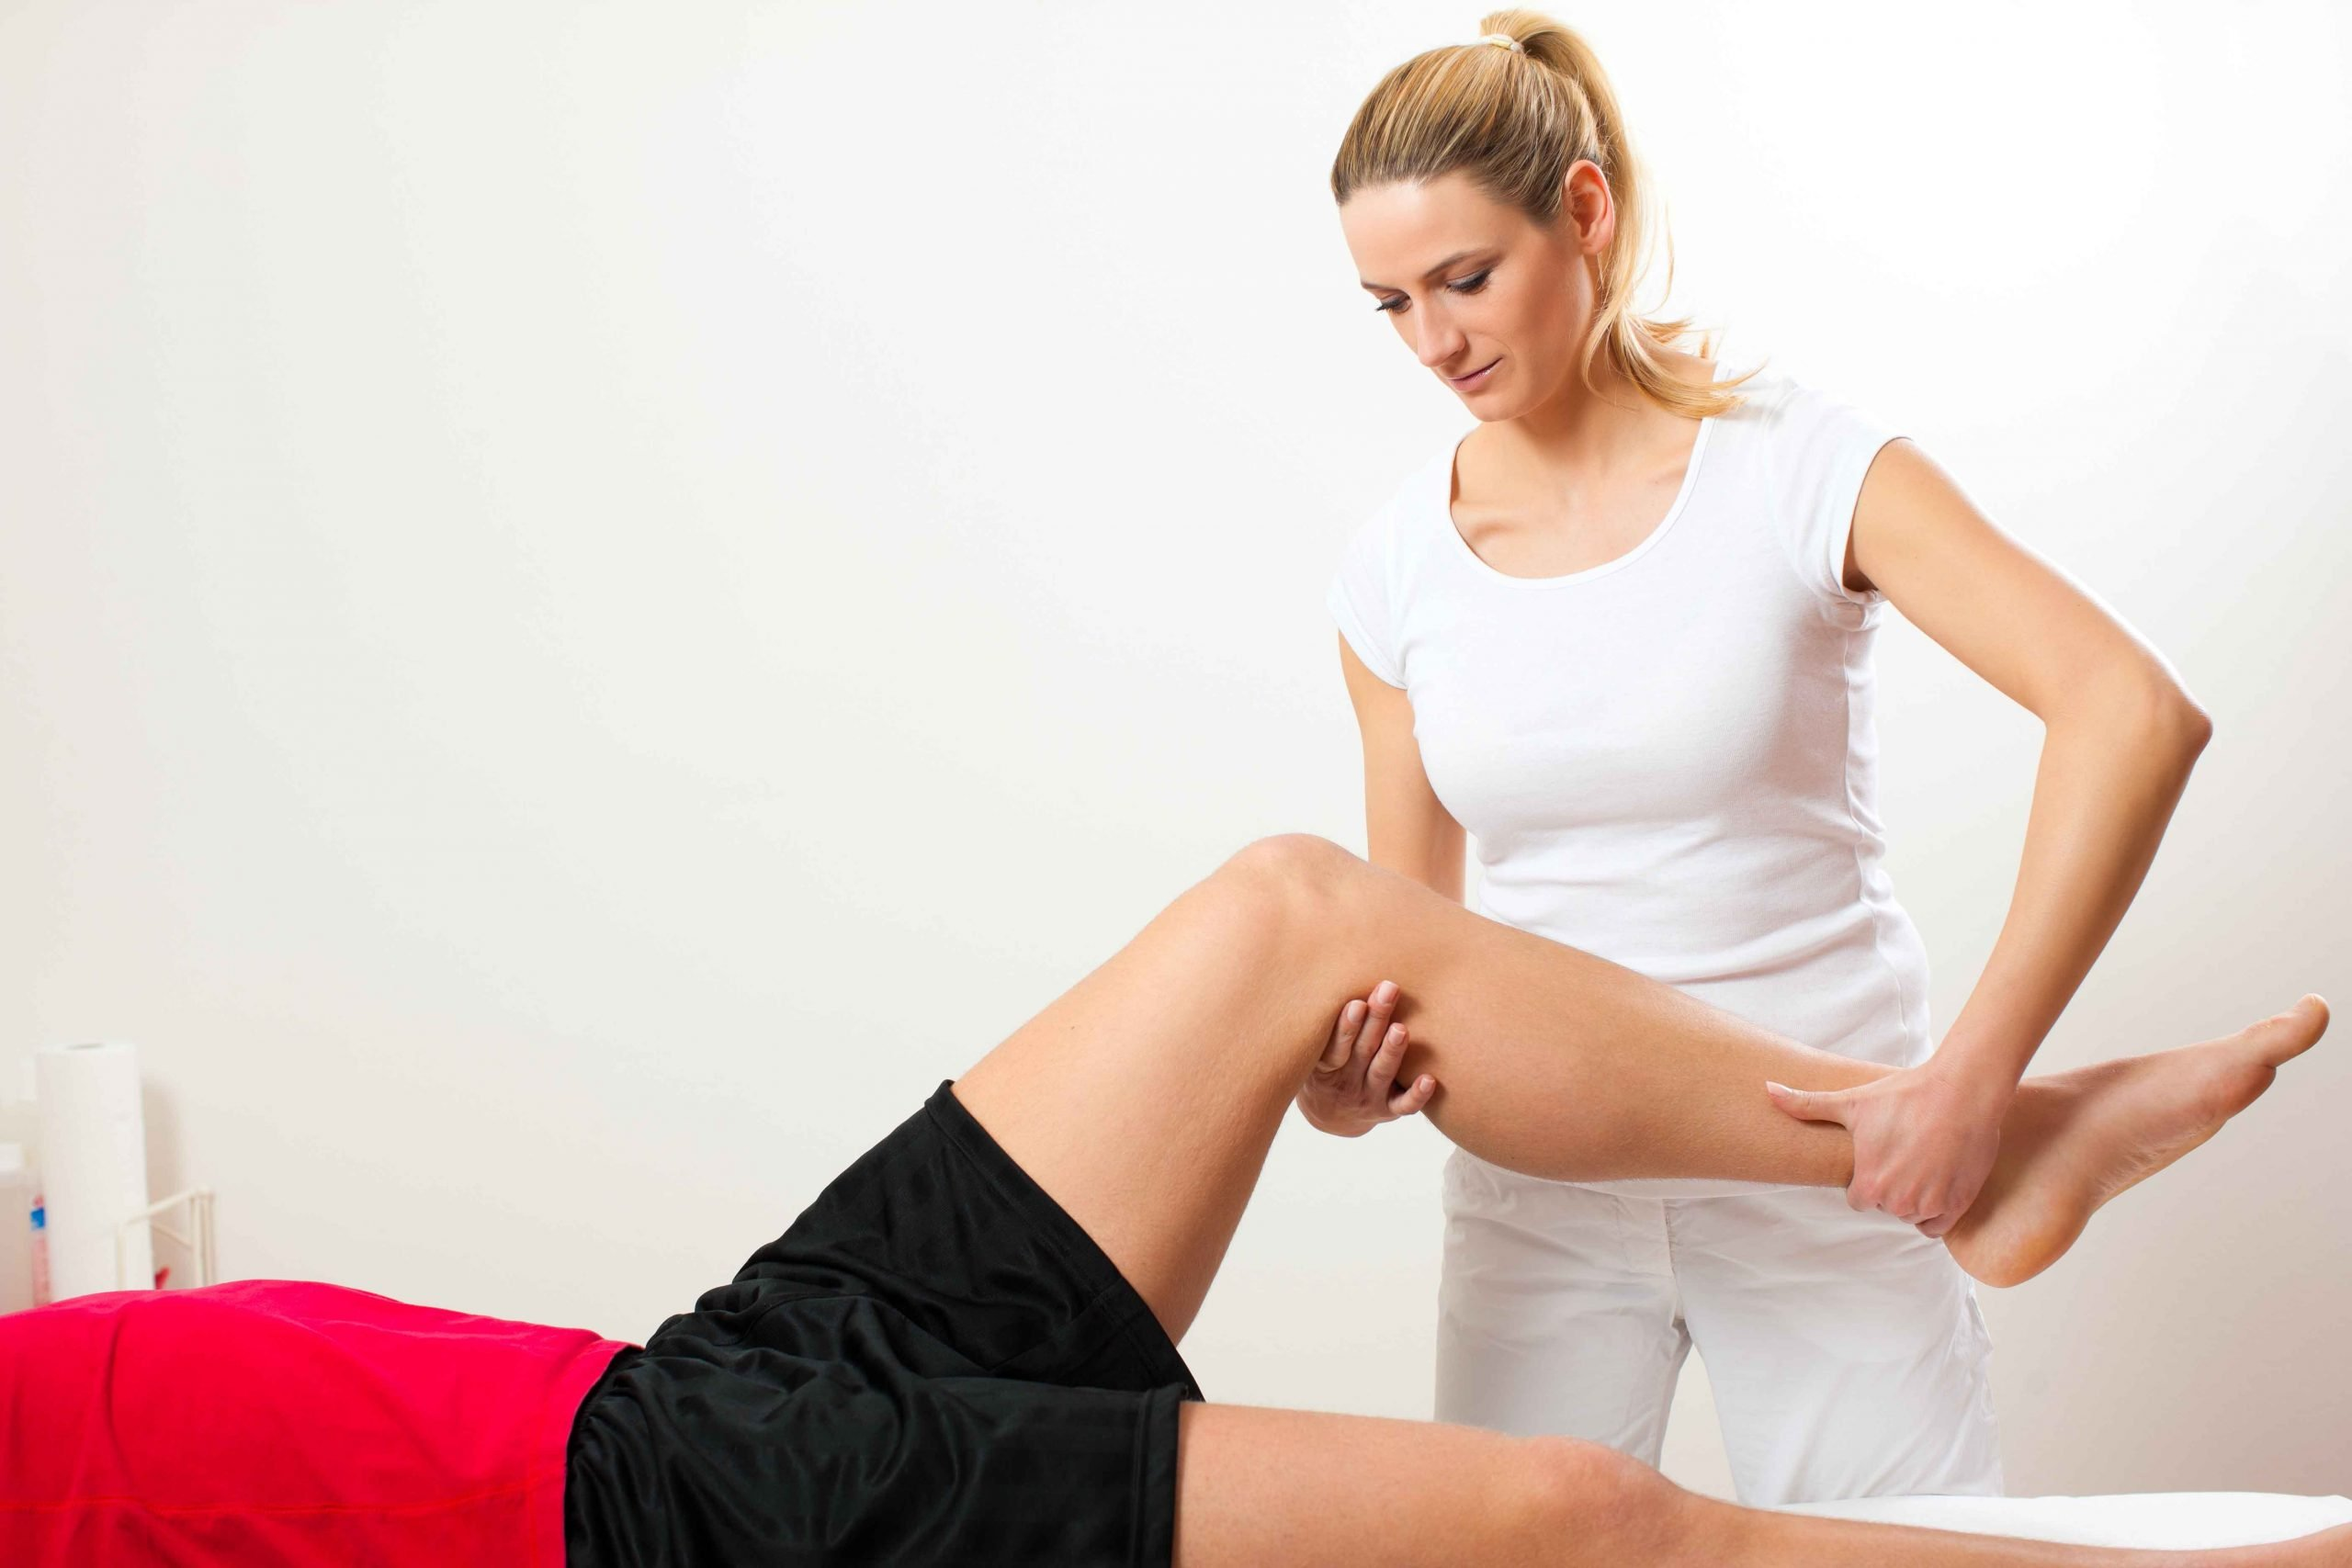 Female blonde physiotherapist holding knee and ankle of patient